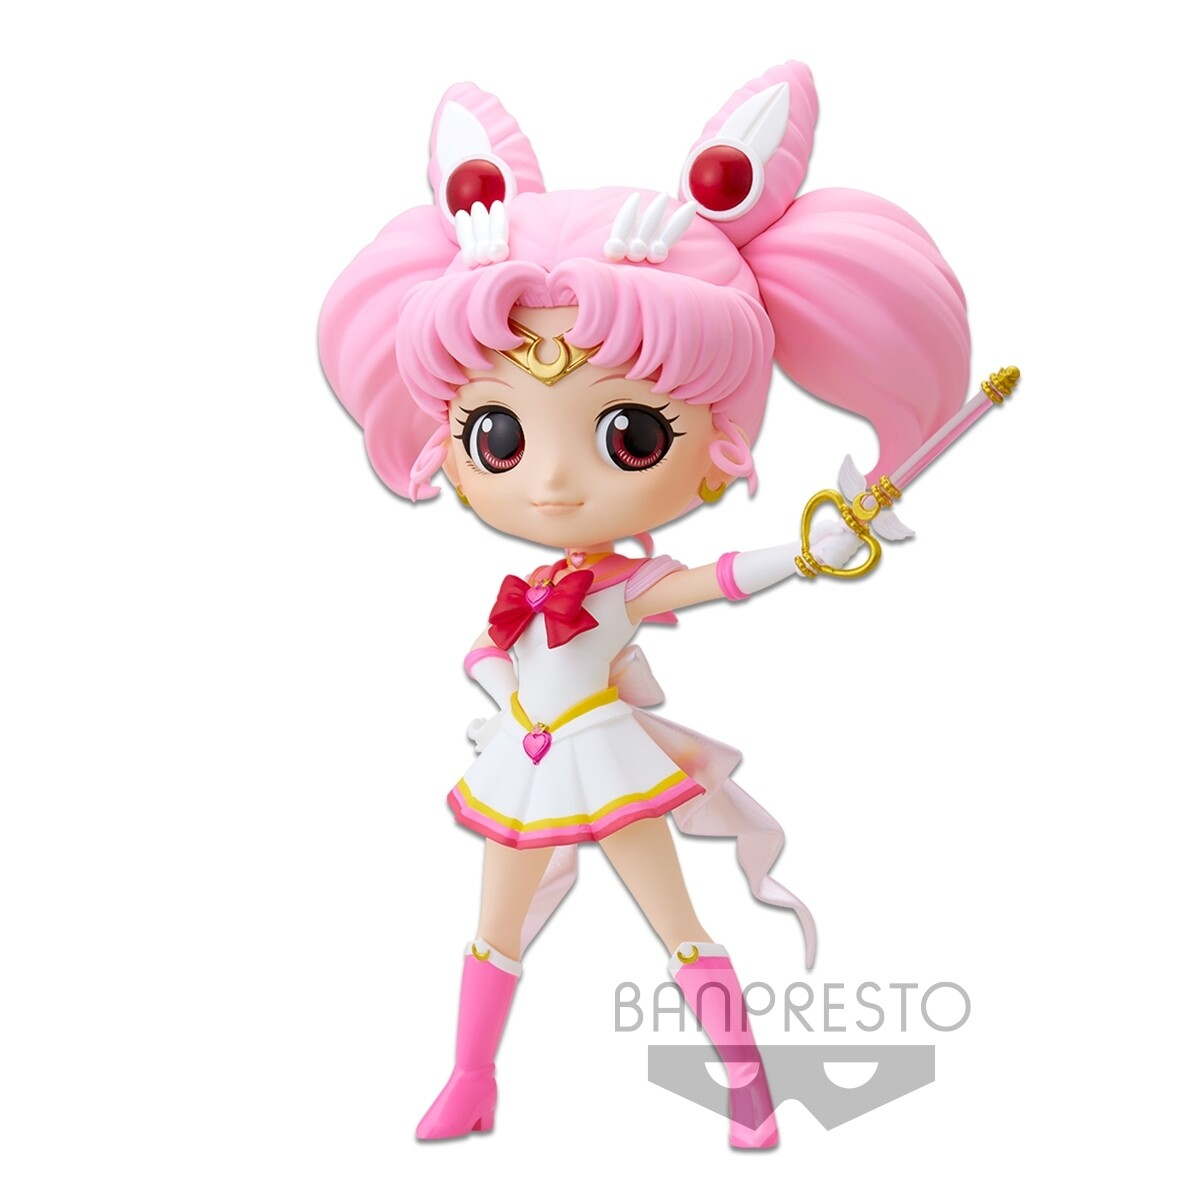 PRE-ORDER Q POSKET-SUPER SAILOR CHIBI MOON-CHIBI MOON KALEIDOSCOPE VER PRETTY GUARDIAN SAILOR MOON ETERNAL THE MOVIE